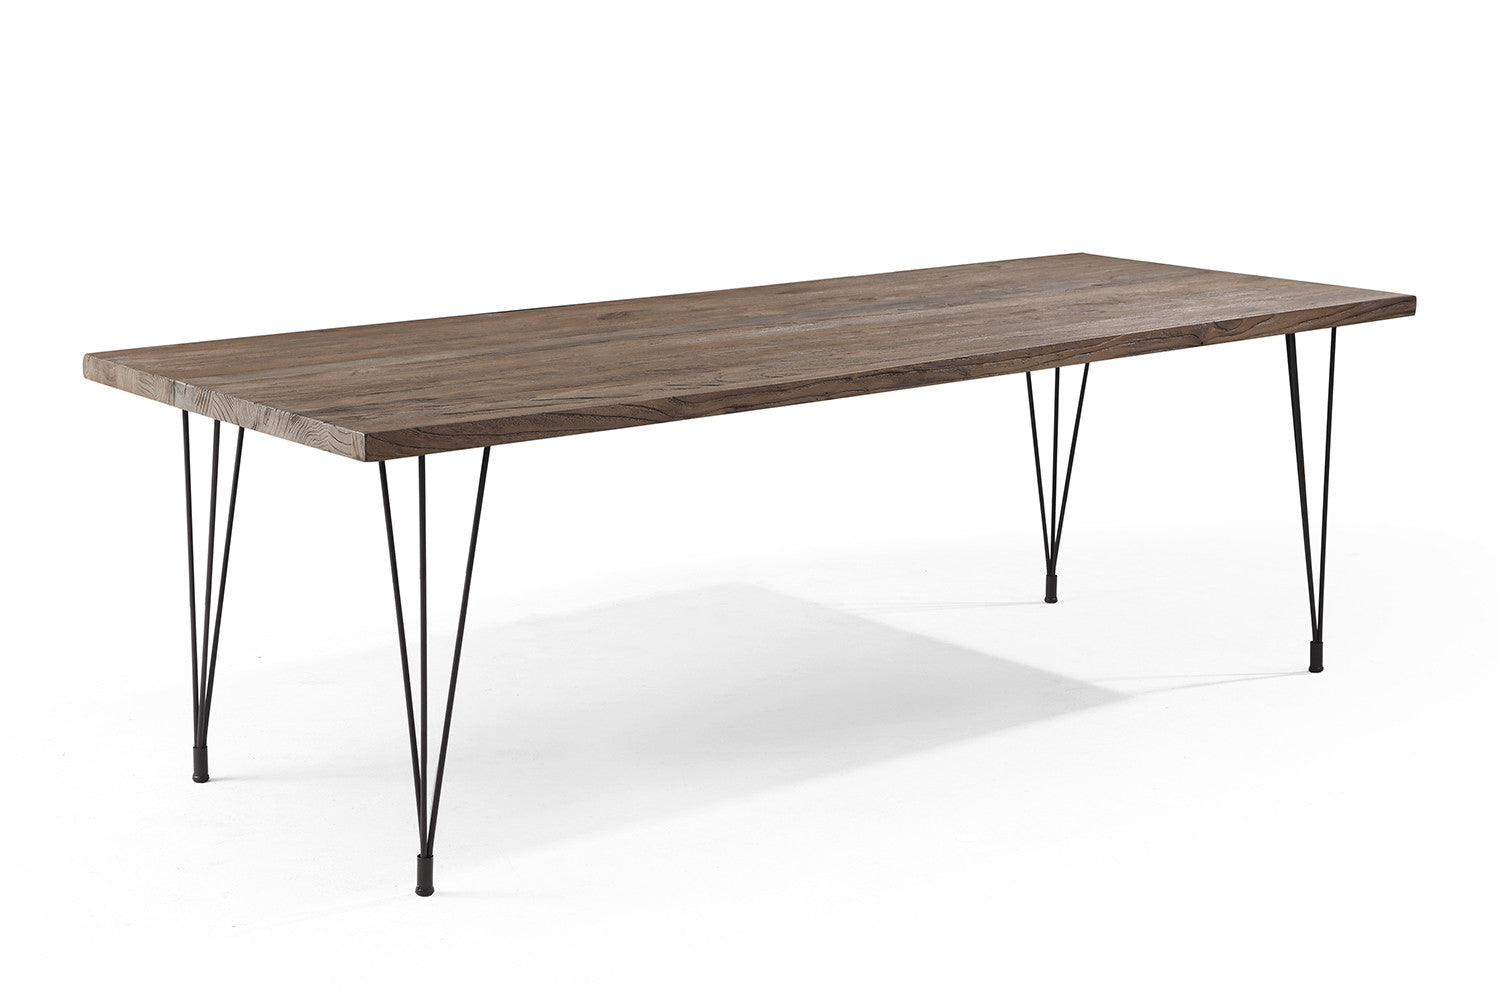 Table manger industrielle pieds en epingle tm02 rose moore for Grande table industrielle